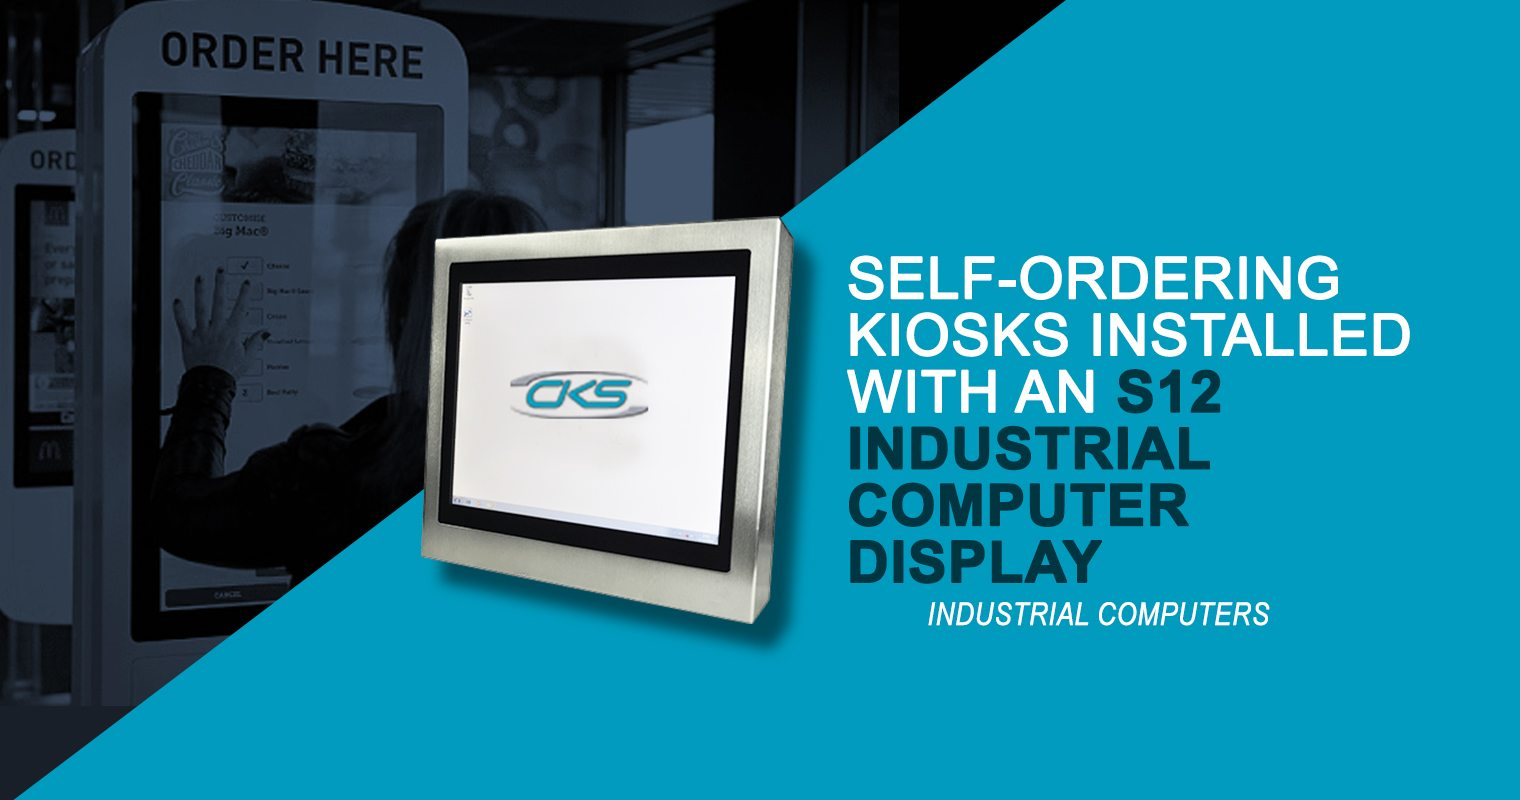 Why Embed the S12 Industrial Computer to Self-Ordering Kiosks